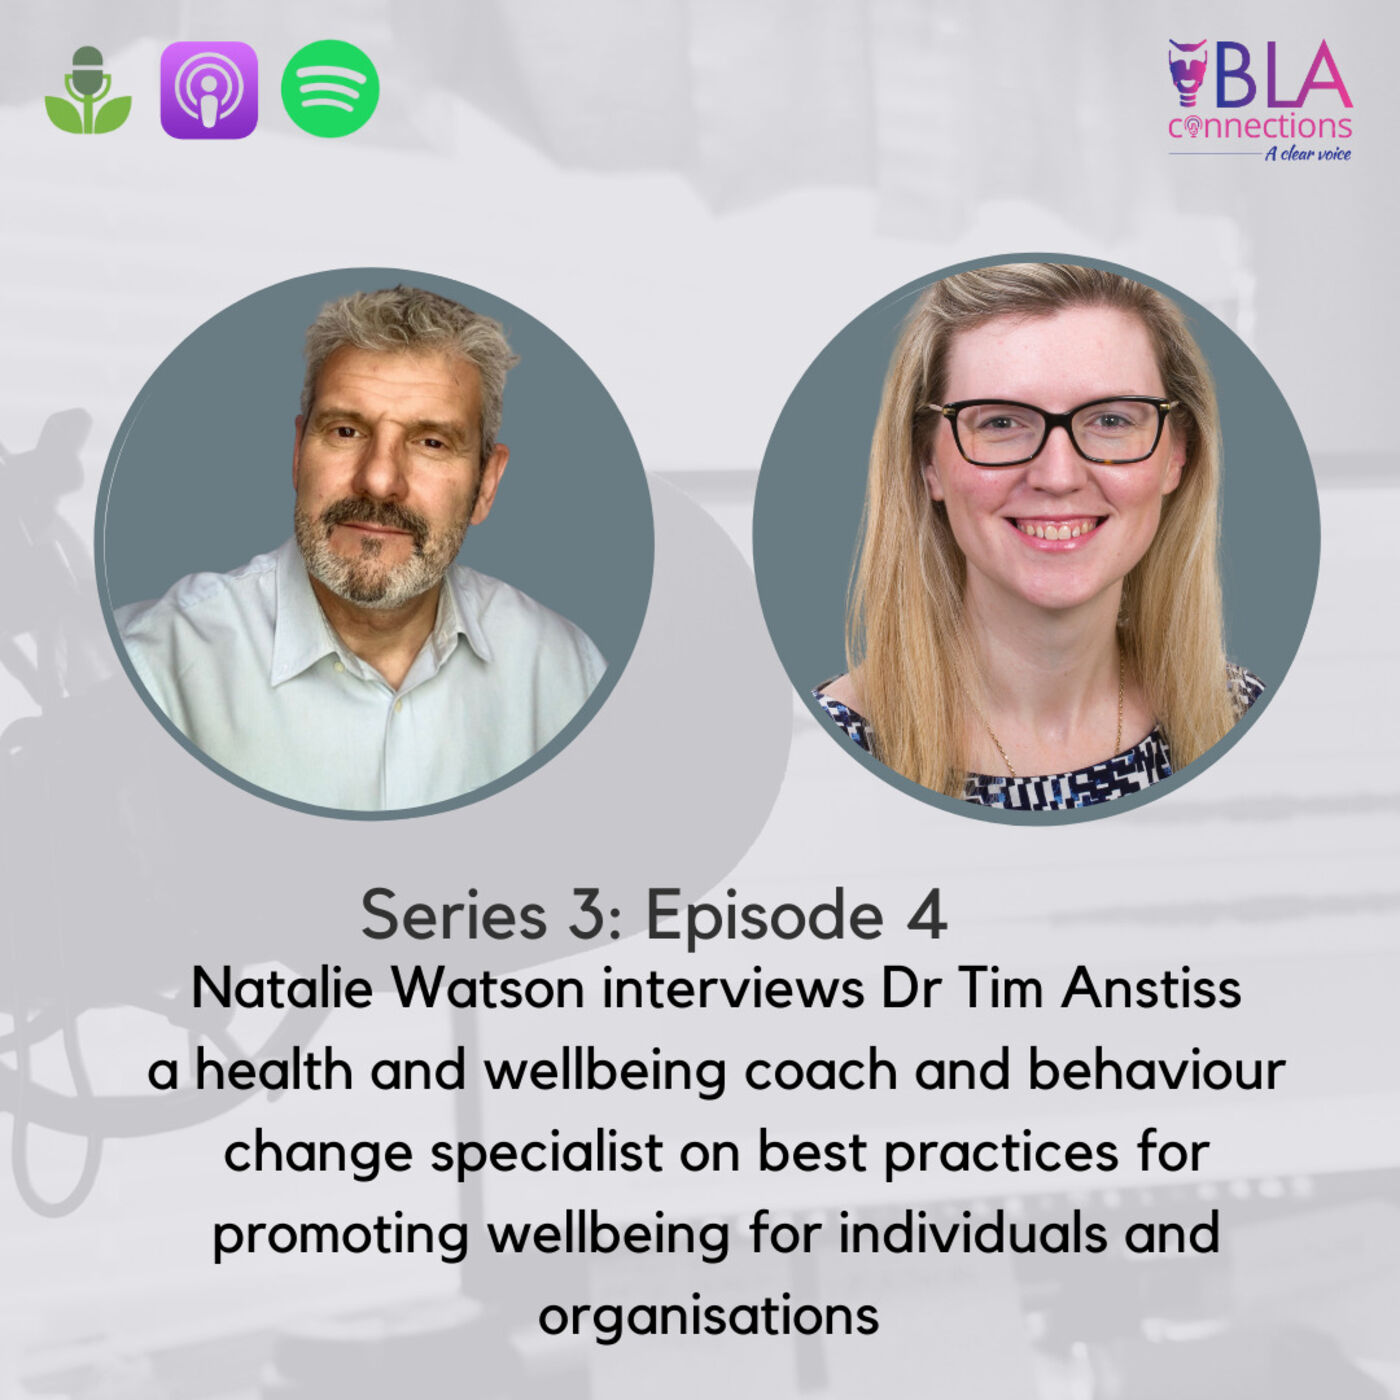 S3 Ep 4: Wellbeing Part 2 with Dr Tim Anstiss